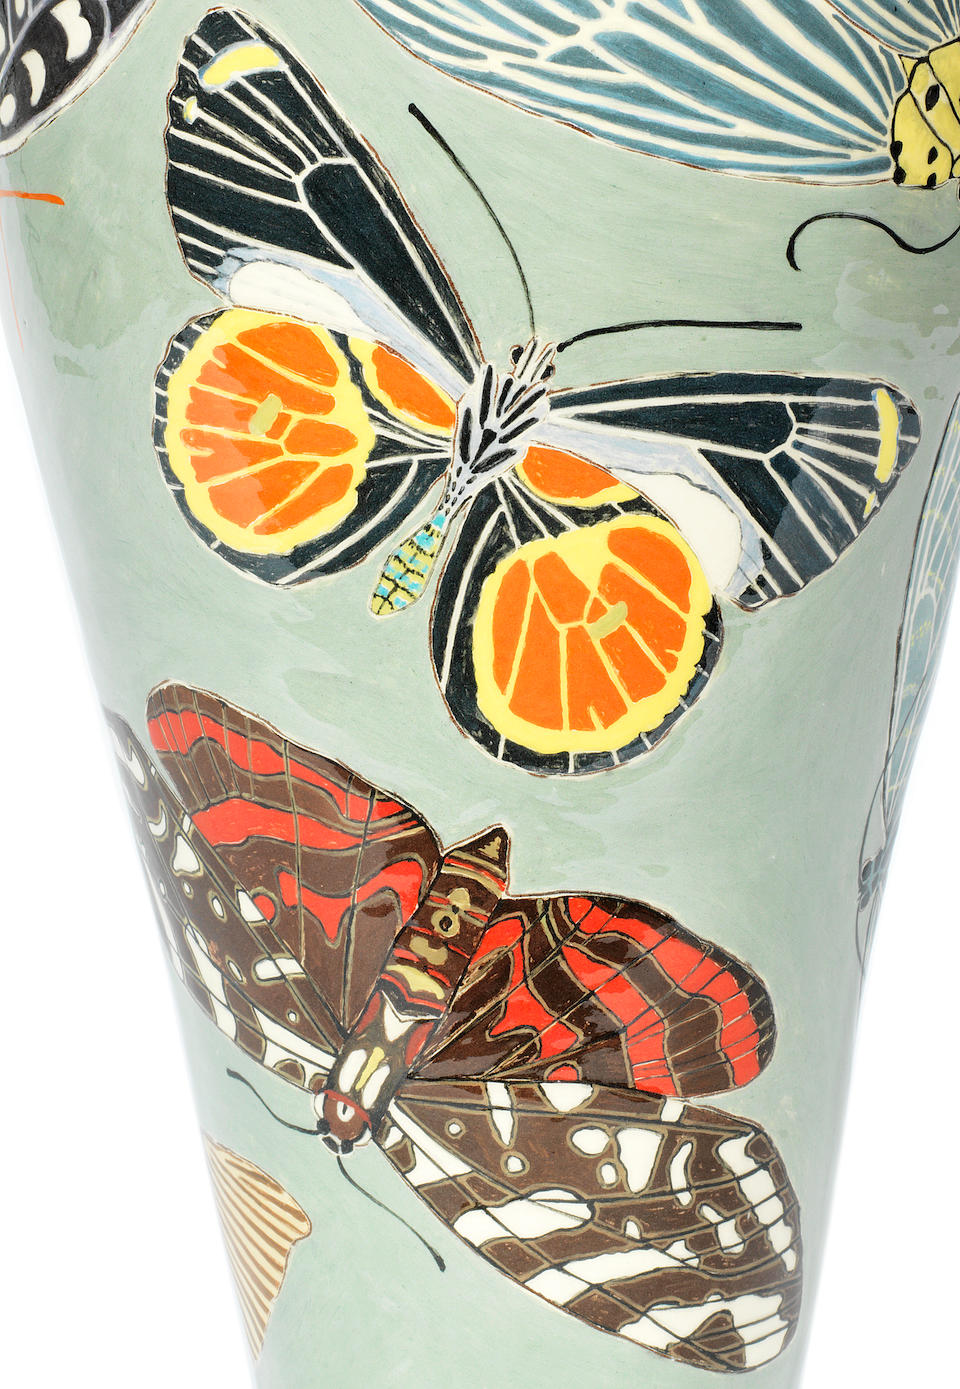 Kitty Shepherd (British, born 1960) 'Mariposa Nocturna': A Large Slipware Vase, executed 2019